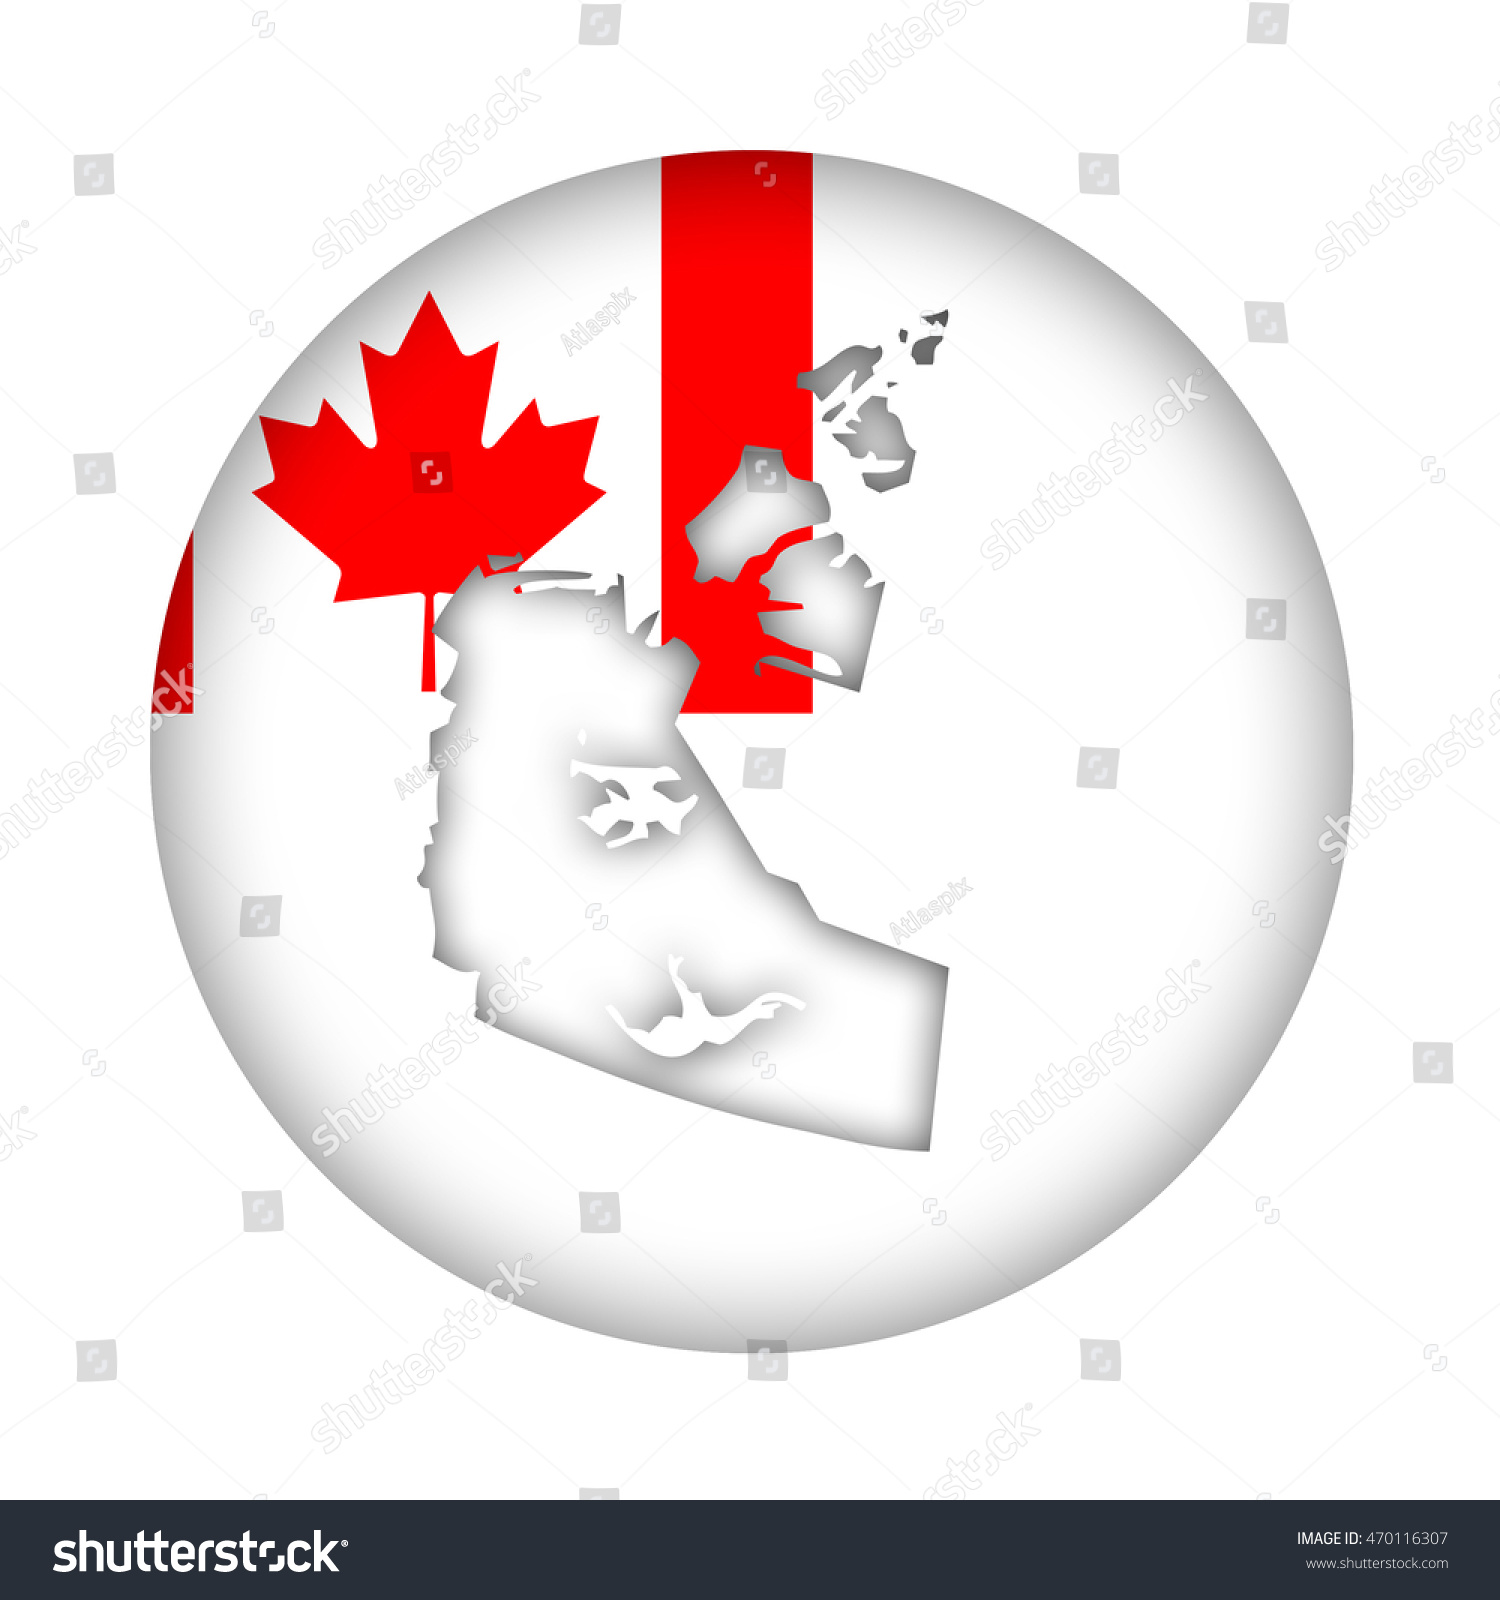 Canada state northwest territories map flag stock illustration canada state of northwest territories map flag button isolated on a white background biocorpaavc Choice Image